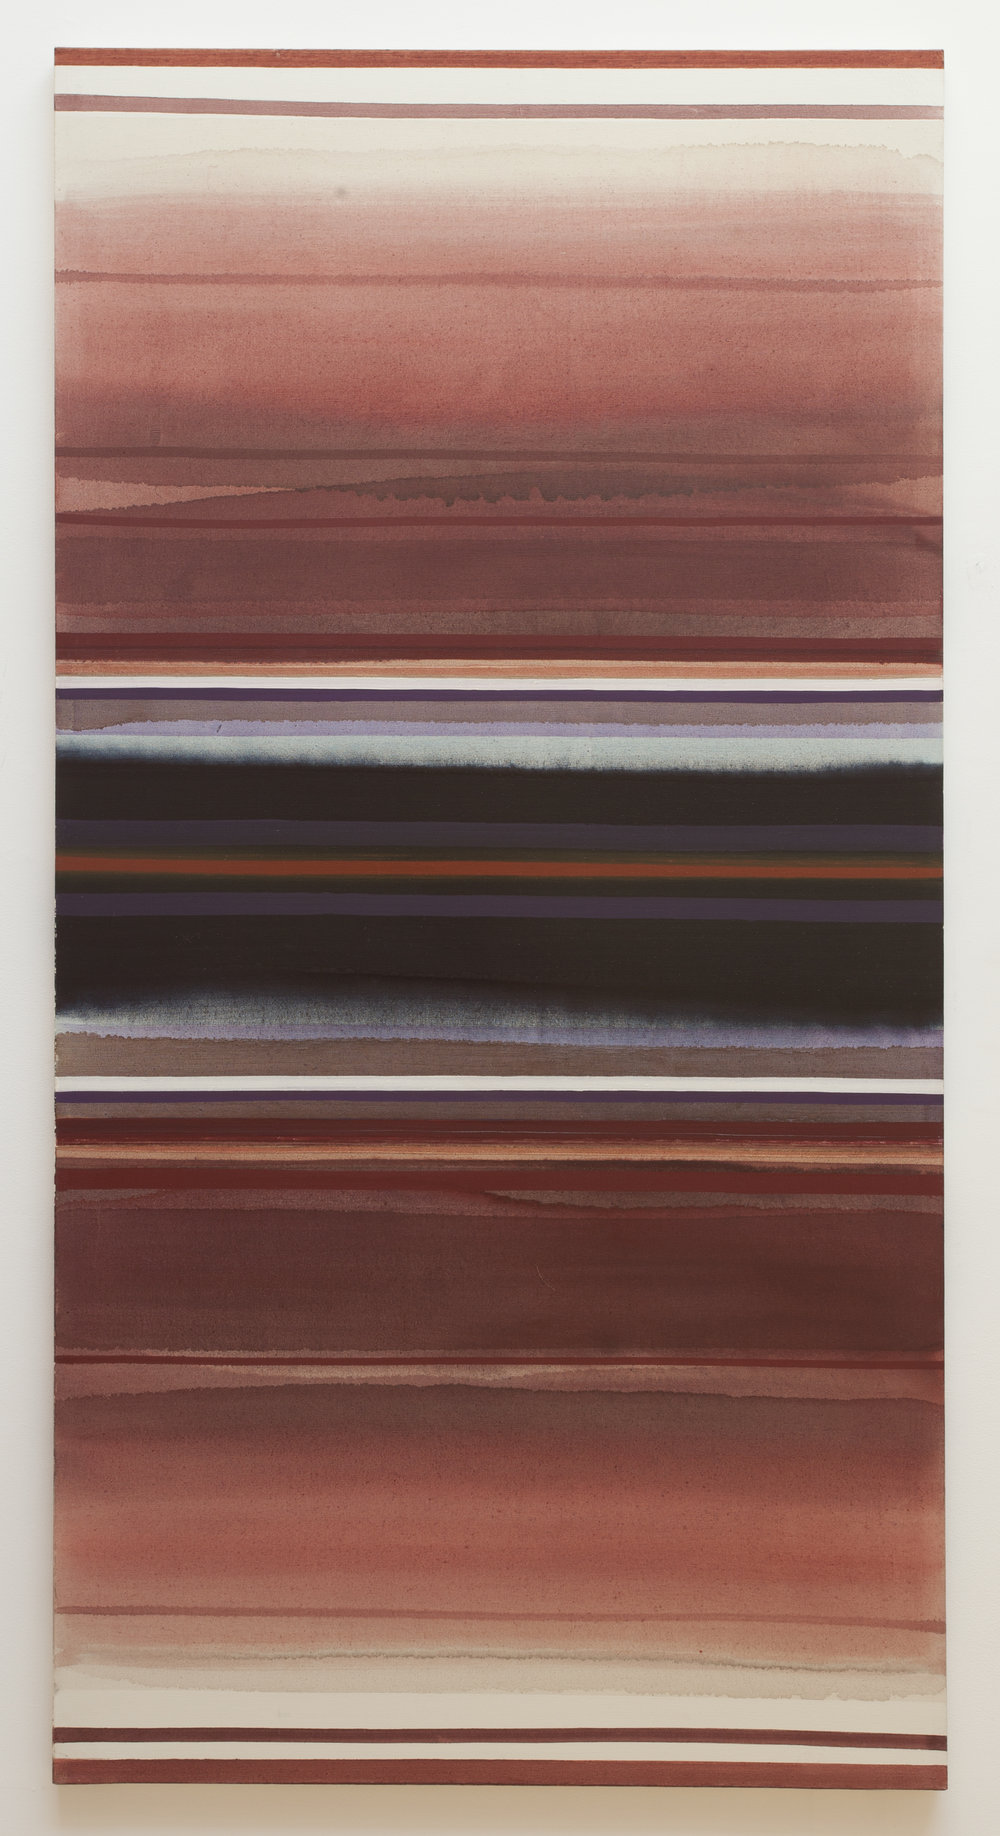 Untitled  (1961), oil on canvas, 96 x 49.5""